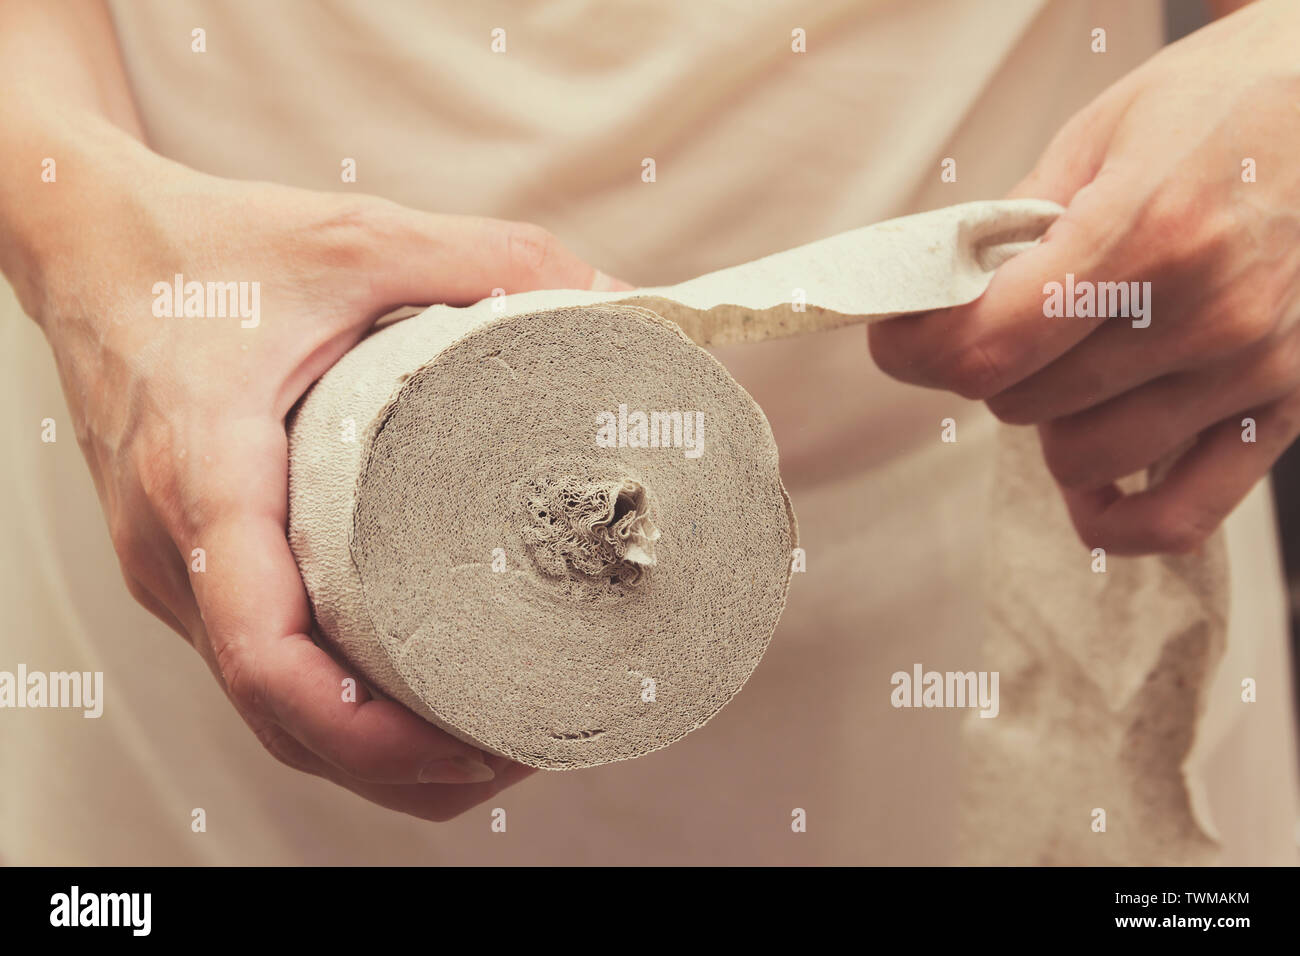 A woman holds a roll of toilet paper and is going to tear off part of it. - Stock Image